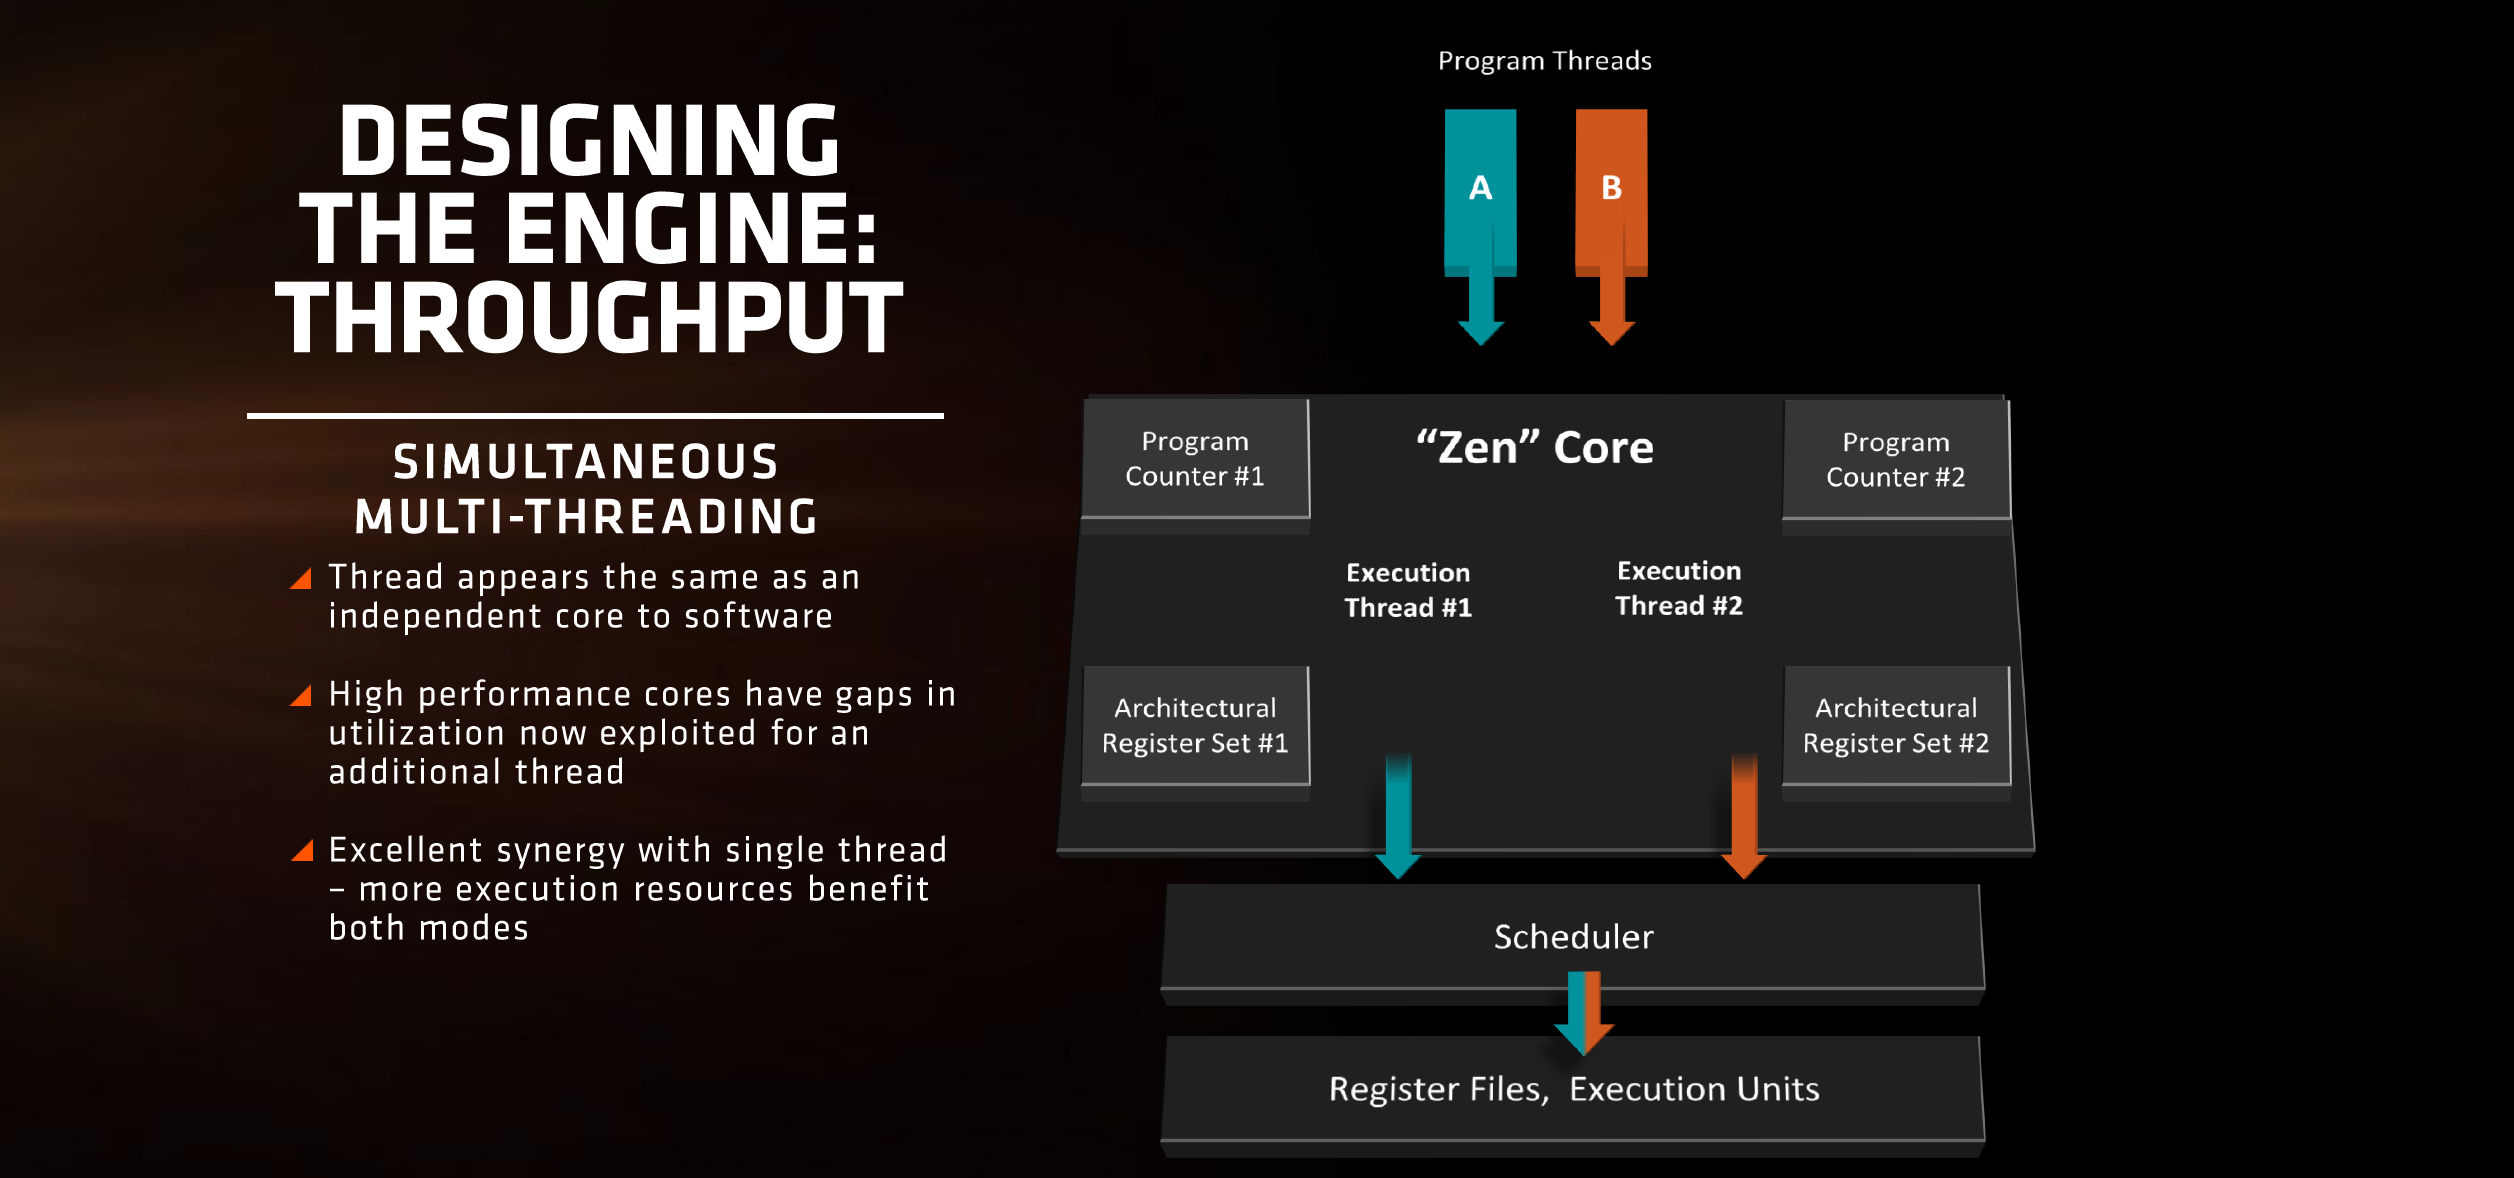 Amd Ryzen Review 7 1800x 1700x Put To The Test Techspot Cpu Diagram As Well Microsoft Framework Further Labeled Whereas Bulldozer Used Modules That Performed Much Like A Dual Core Thread Processor Zen Adopts Smt For What Calls Complex Ccx Design